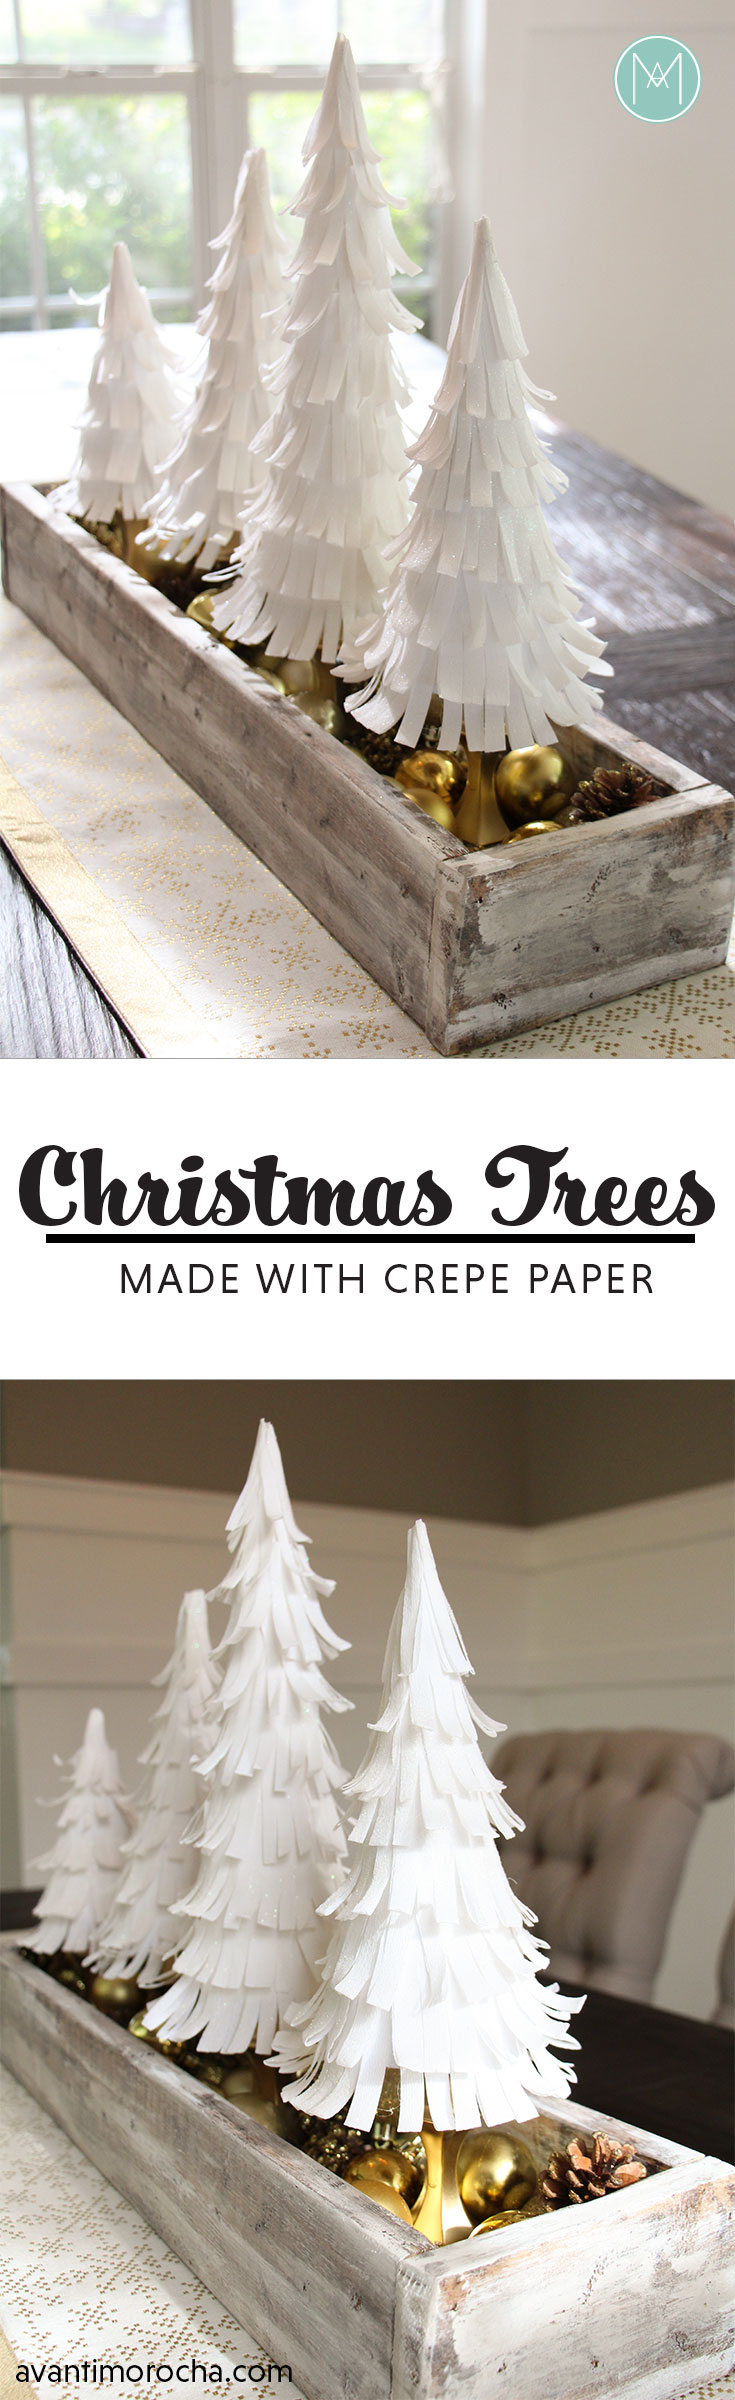 DIY Crepe Paper Christmas Trees